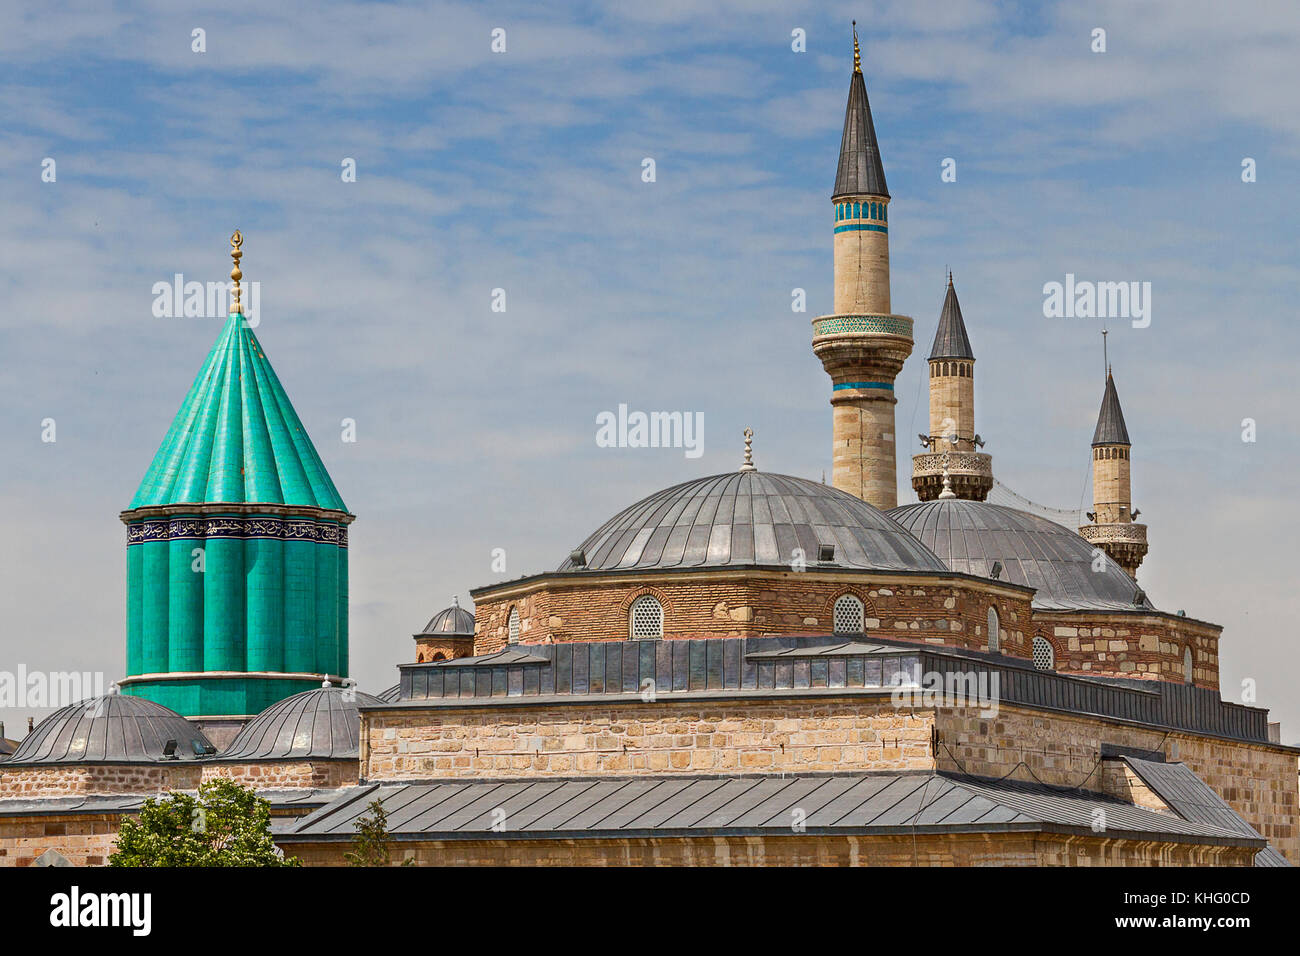 View over the green dome of the Mausoleum of Mevlana in Konya, Turkey. - Stock Image